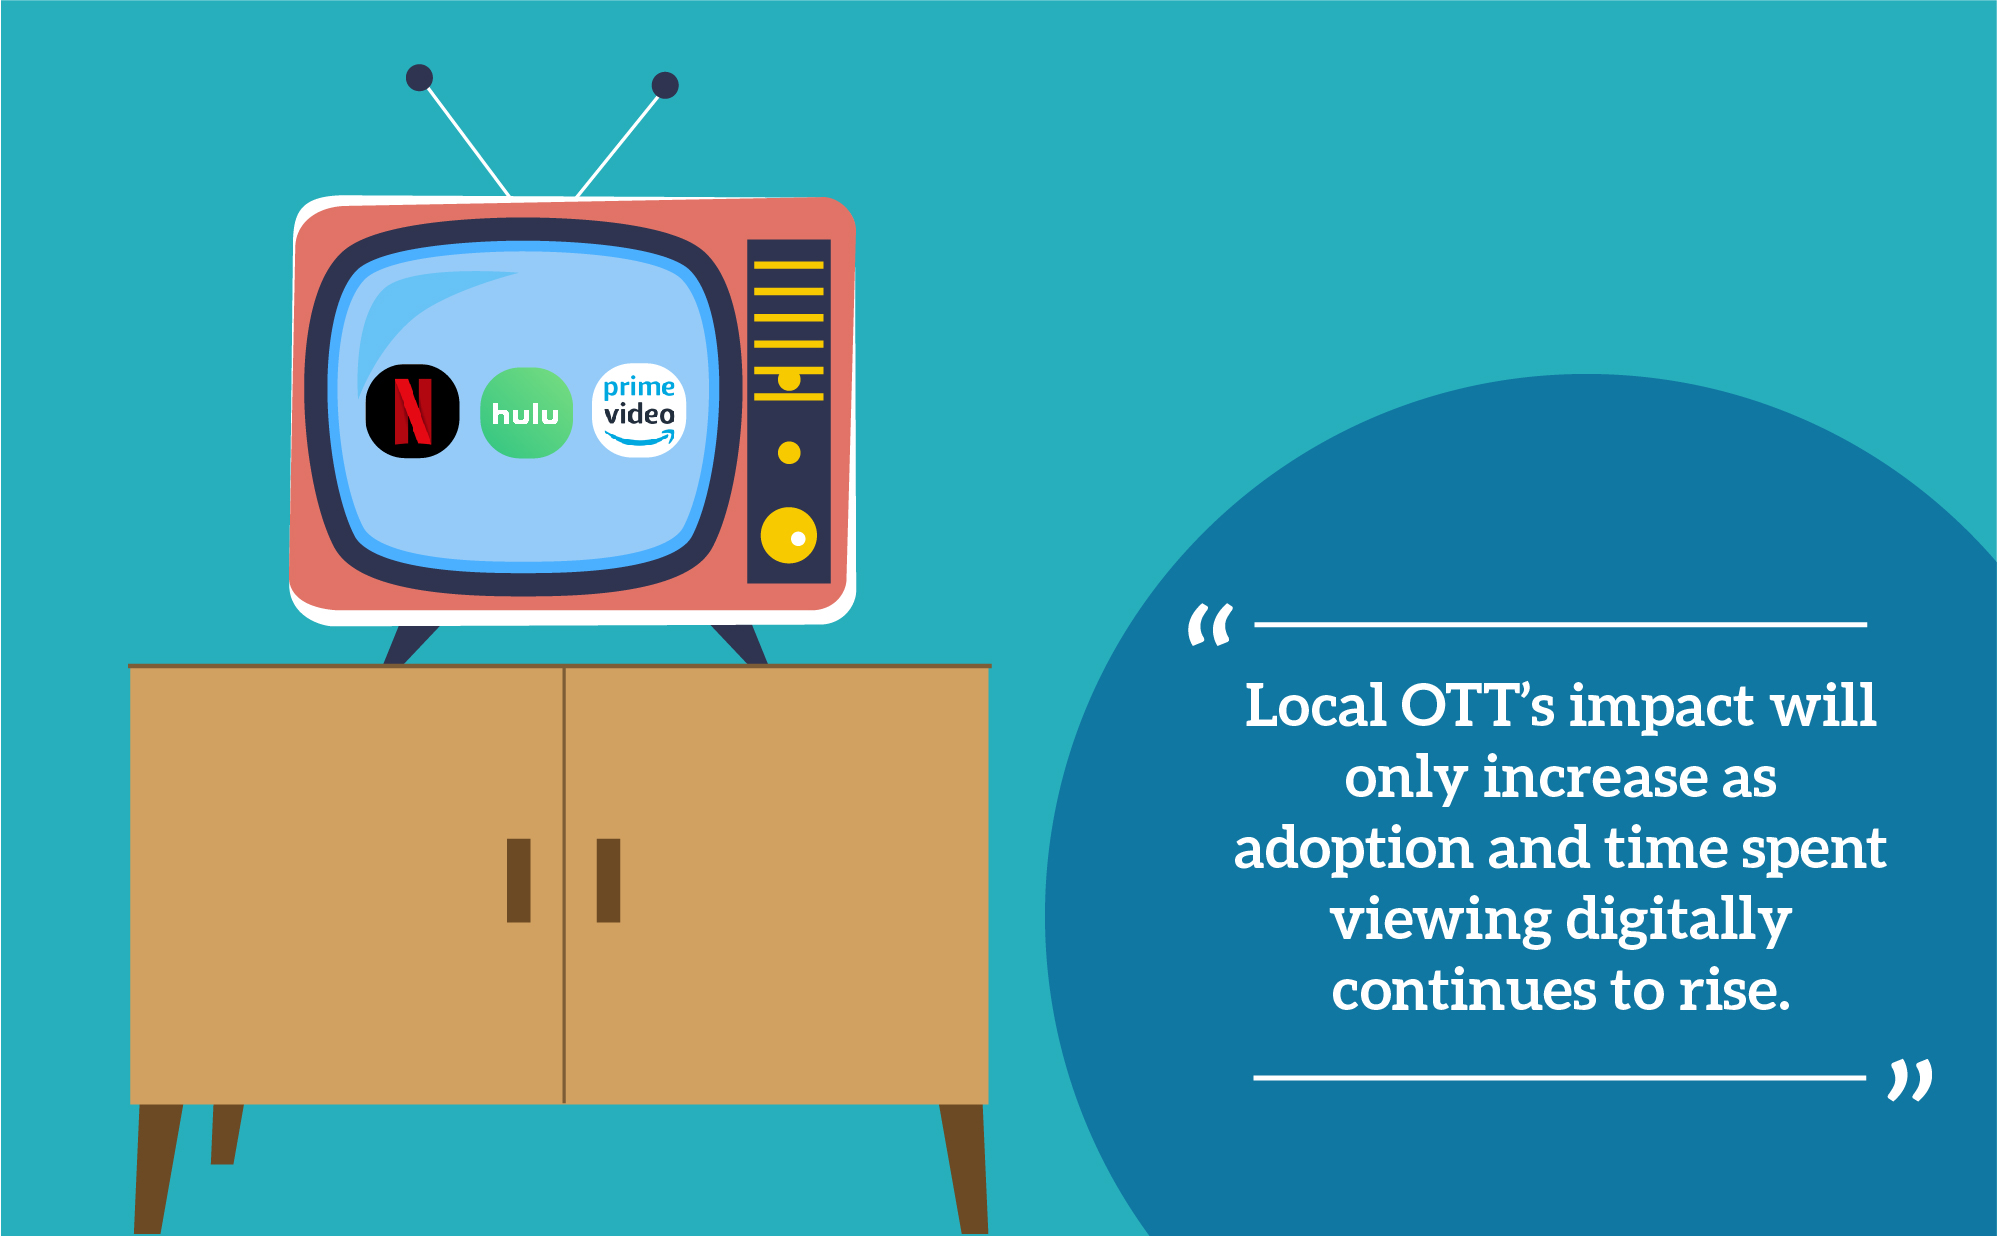 Local OTT's impact will only increase as adoption and time spent viewing digitally continues to rise.